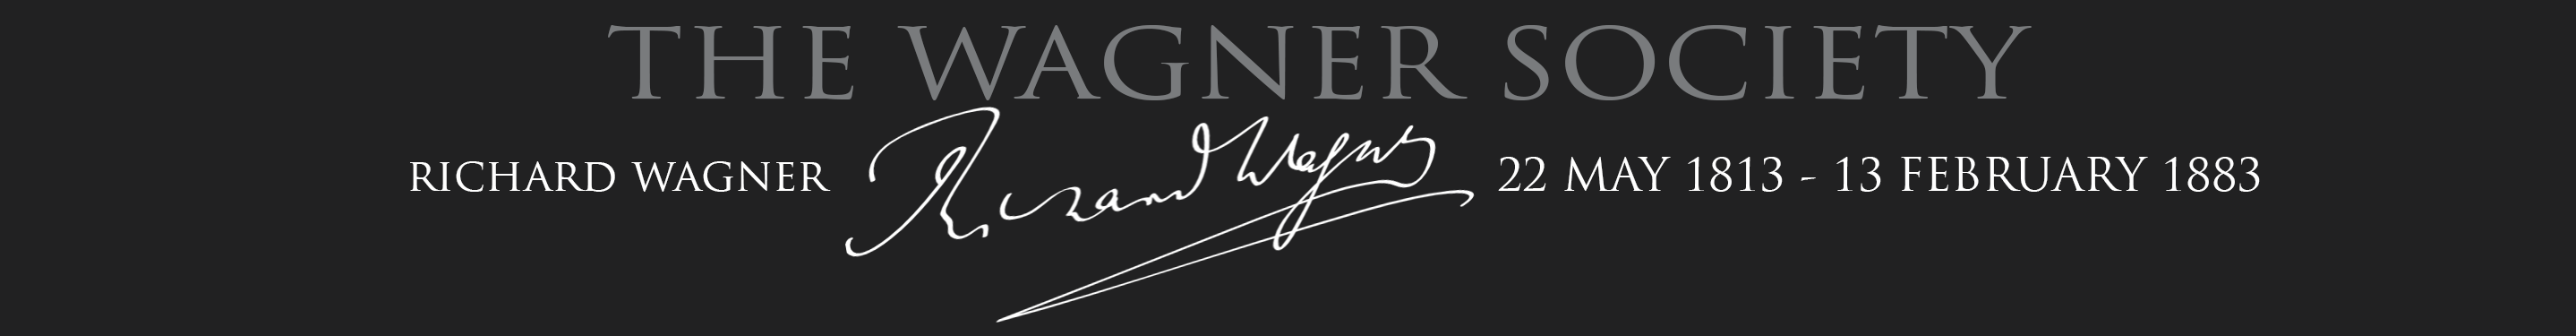 The Wagner Society